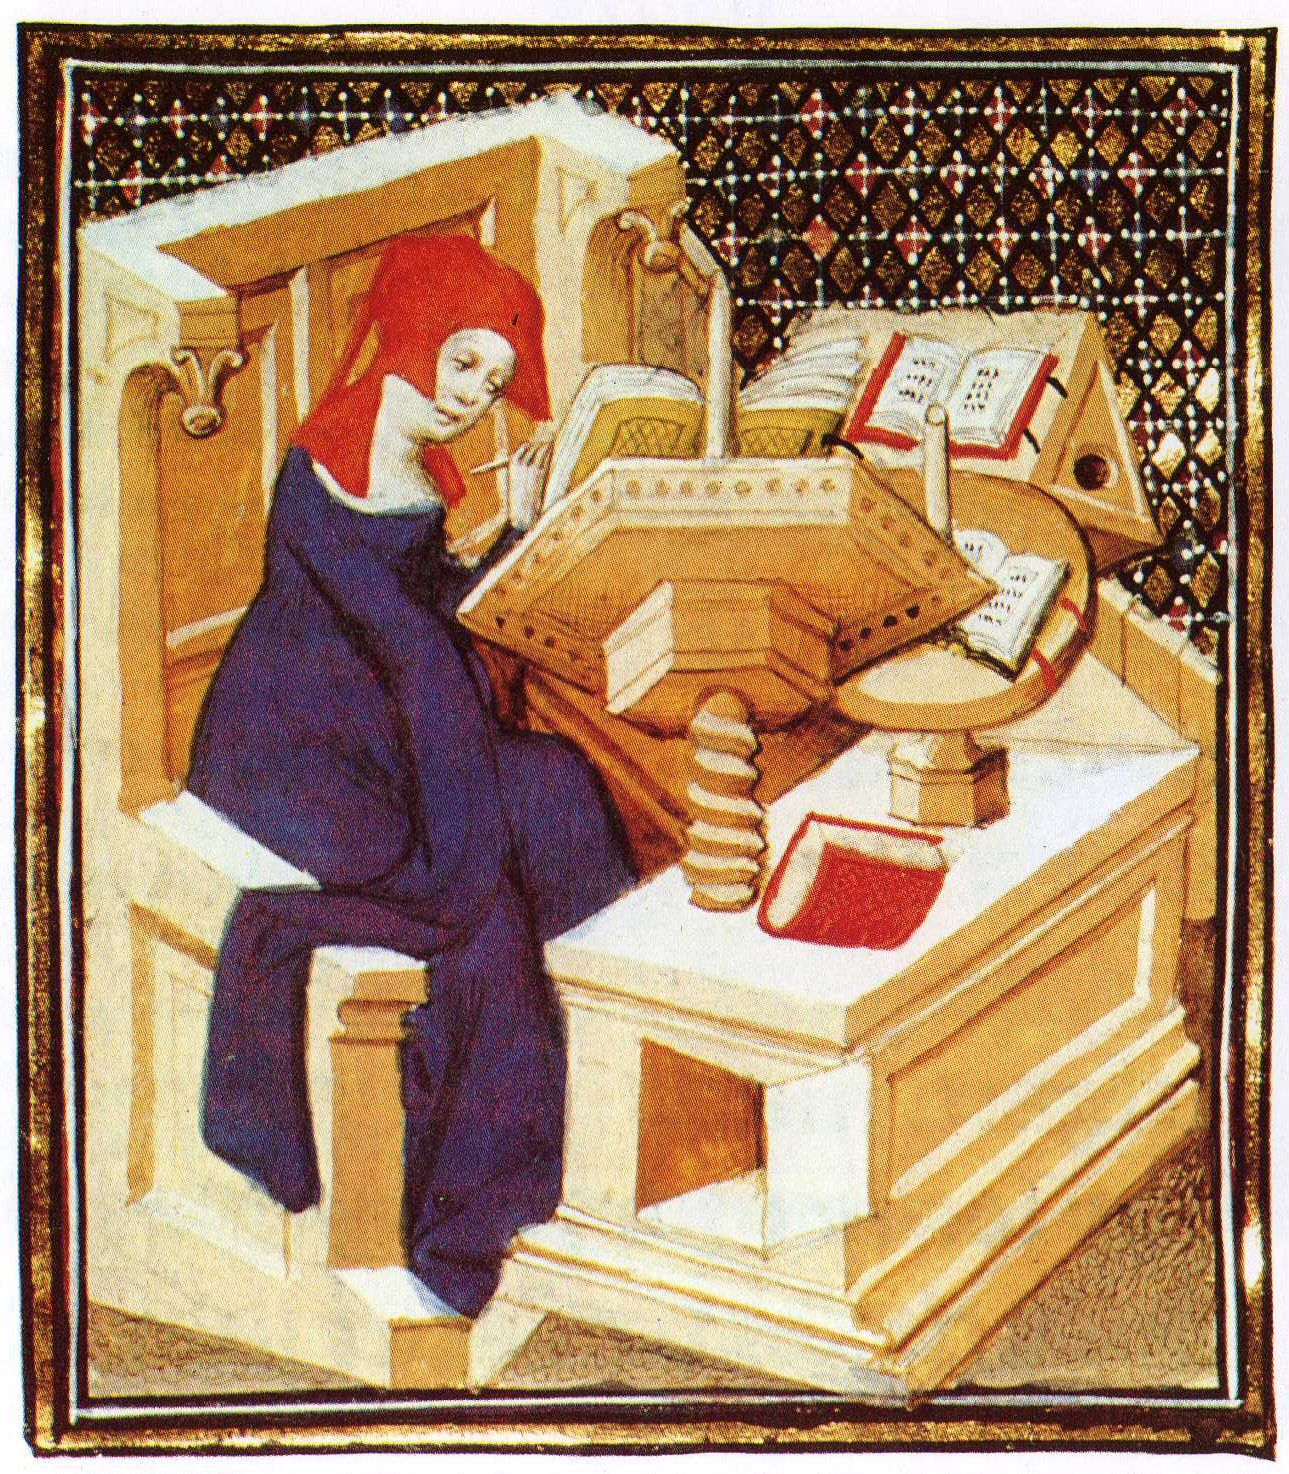 Epingle Sur Scriptorium